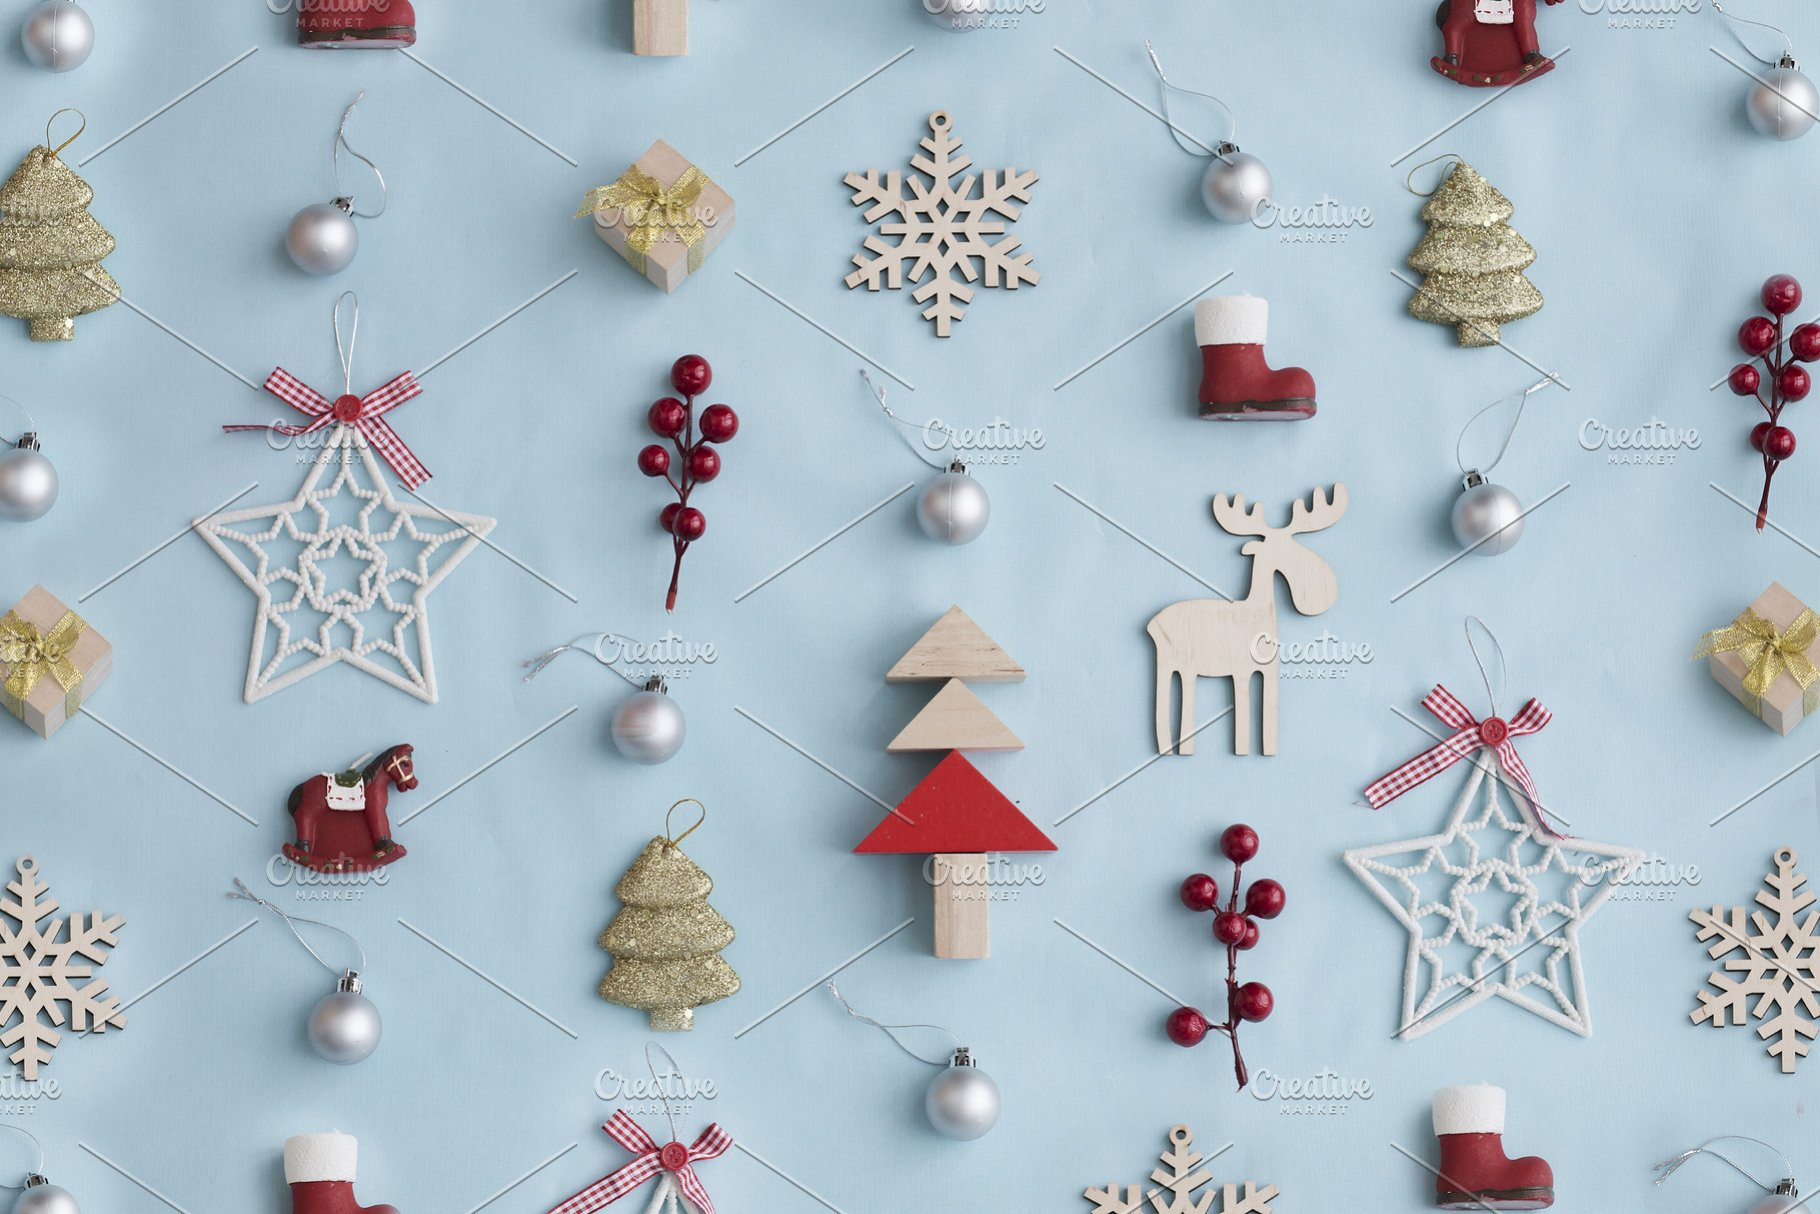 Pastel Christmas Ornaments.Christmas Decorative Ornaments And Gifts On Pastel Background In Vintage Color